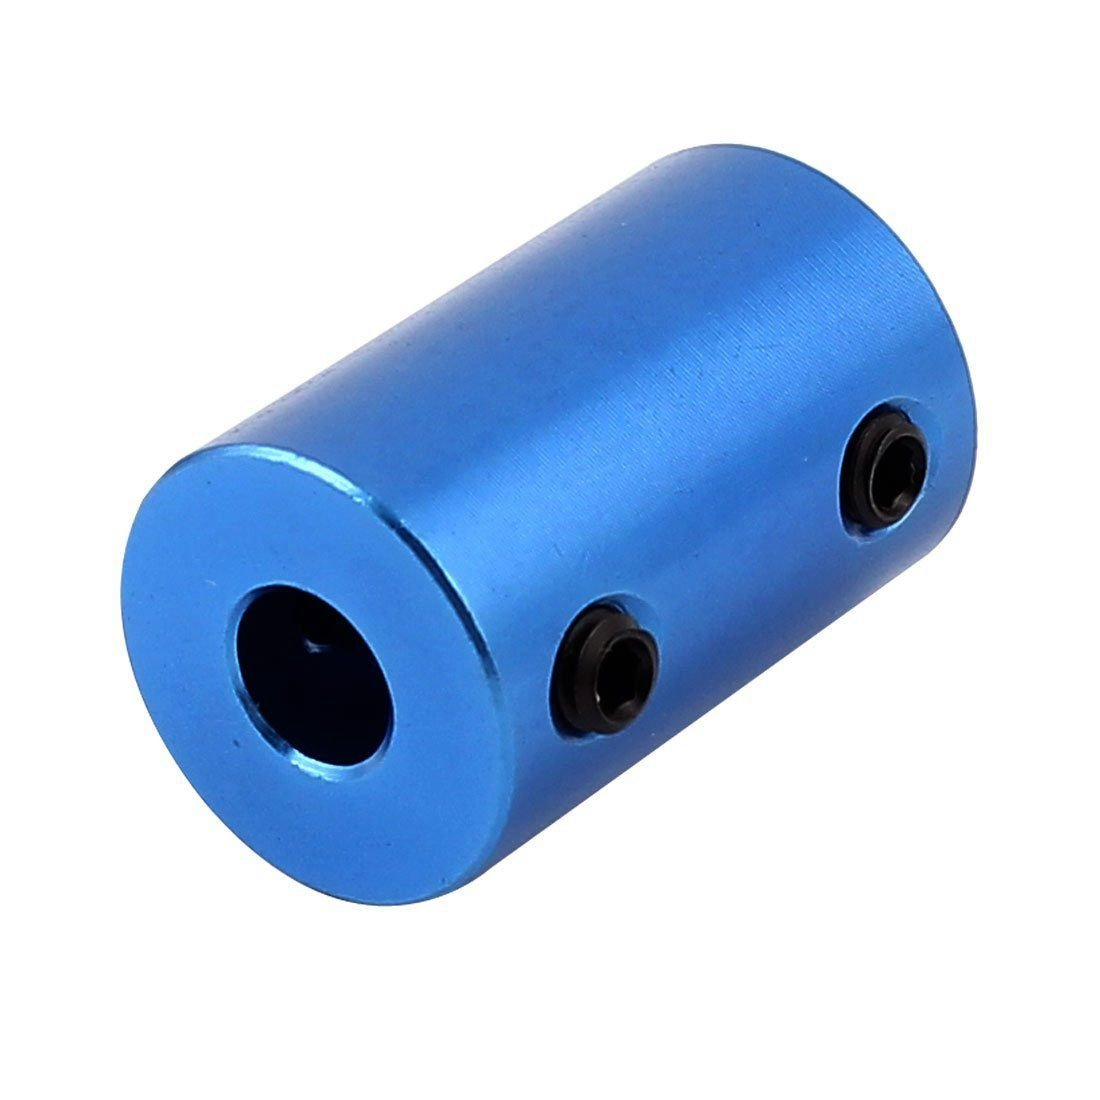 Nrpfell 6mm to 10mm Aluminium Alloy Motor Shaft Coupling Joint Connector, Aluminum Alloy